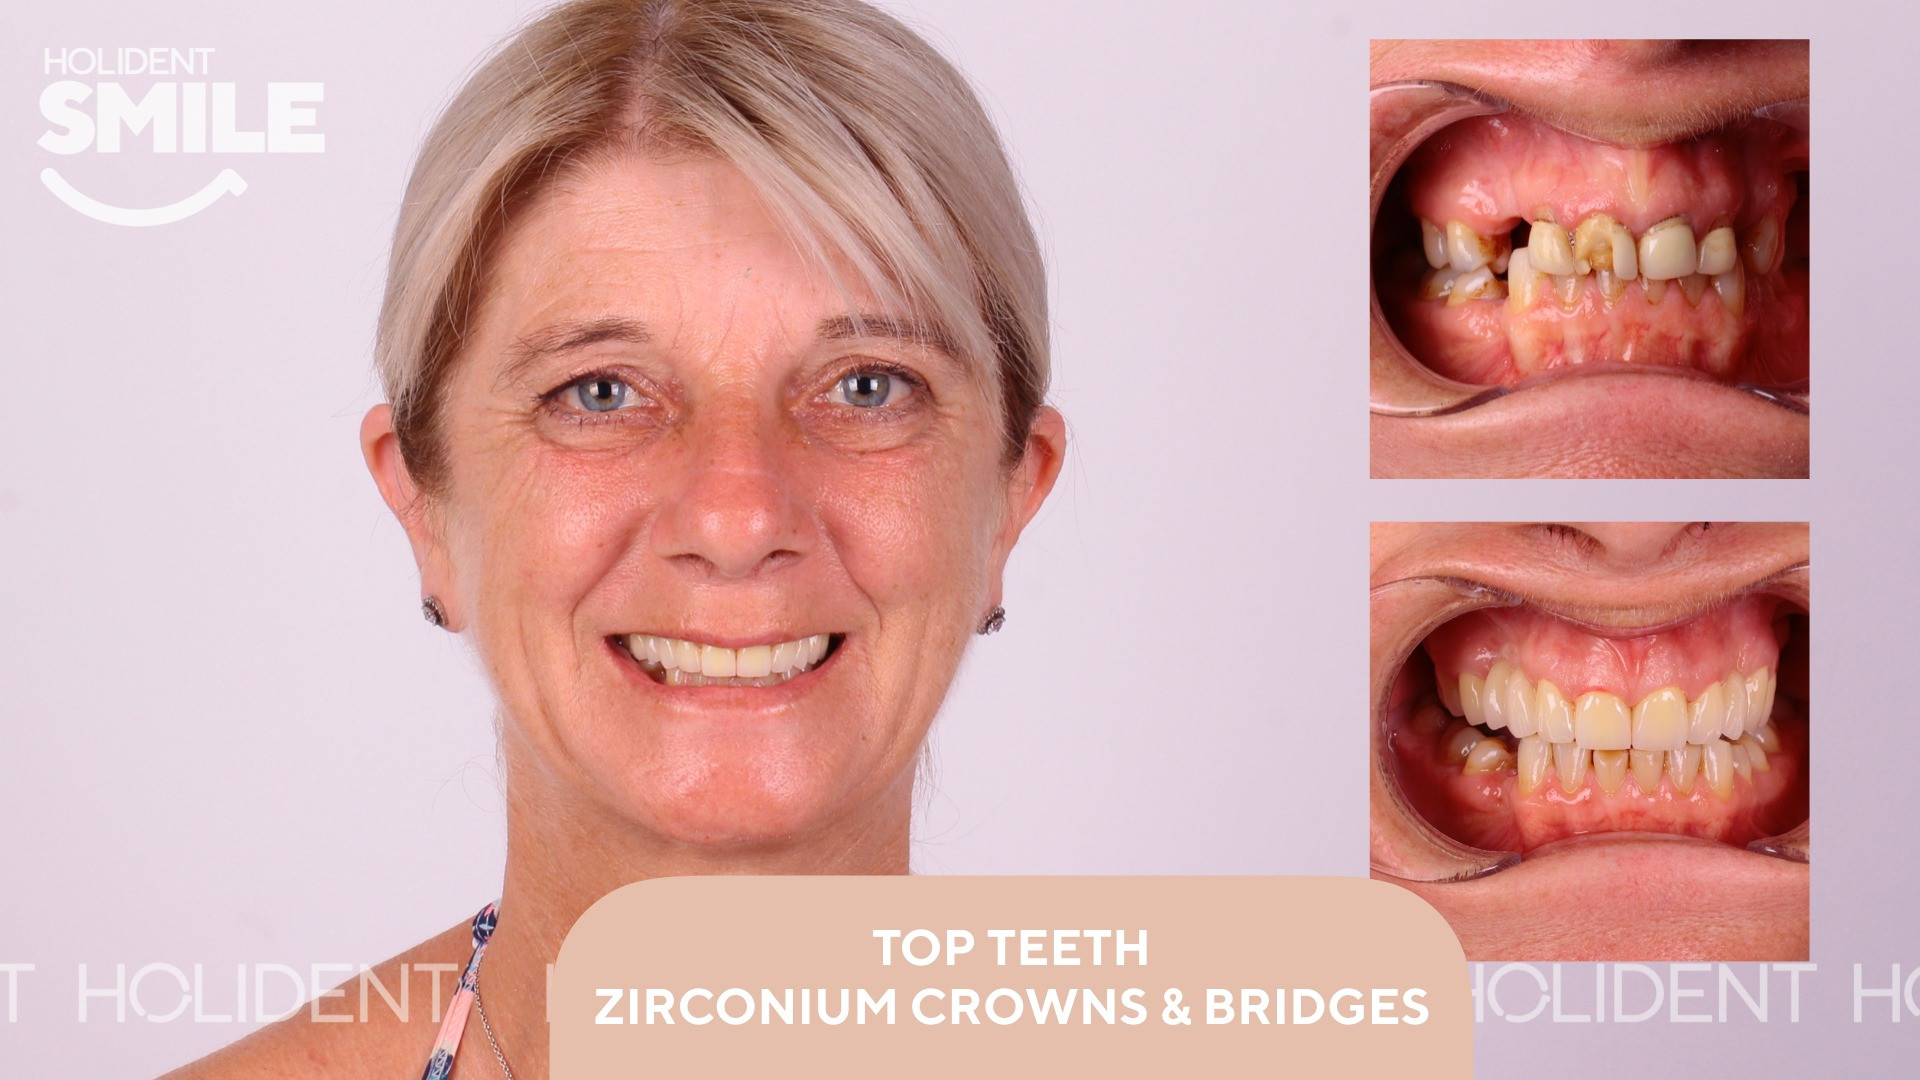 Top teeth crowns and bridges